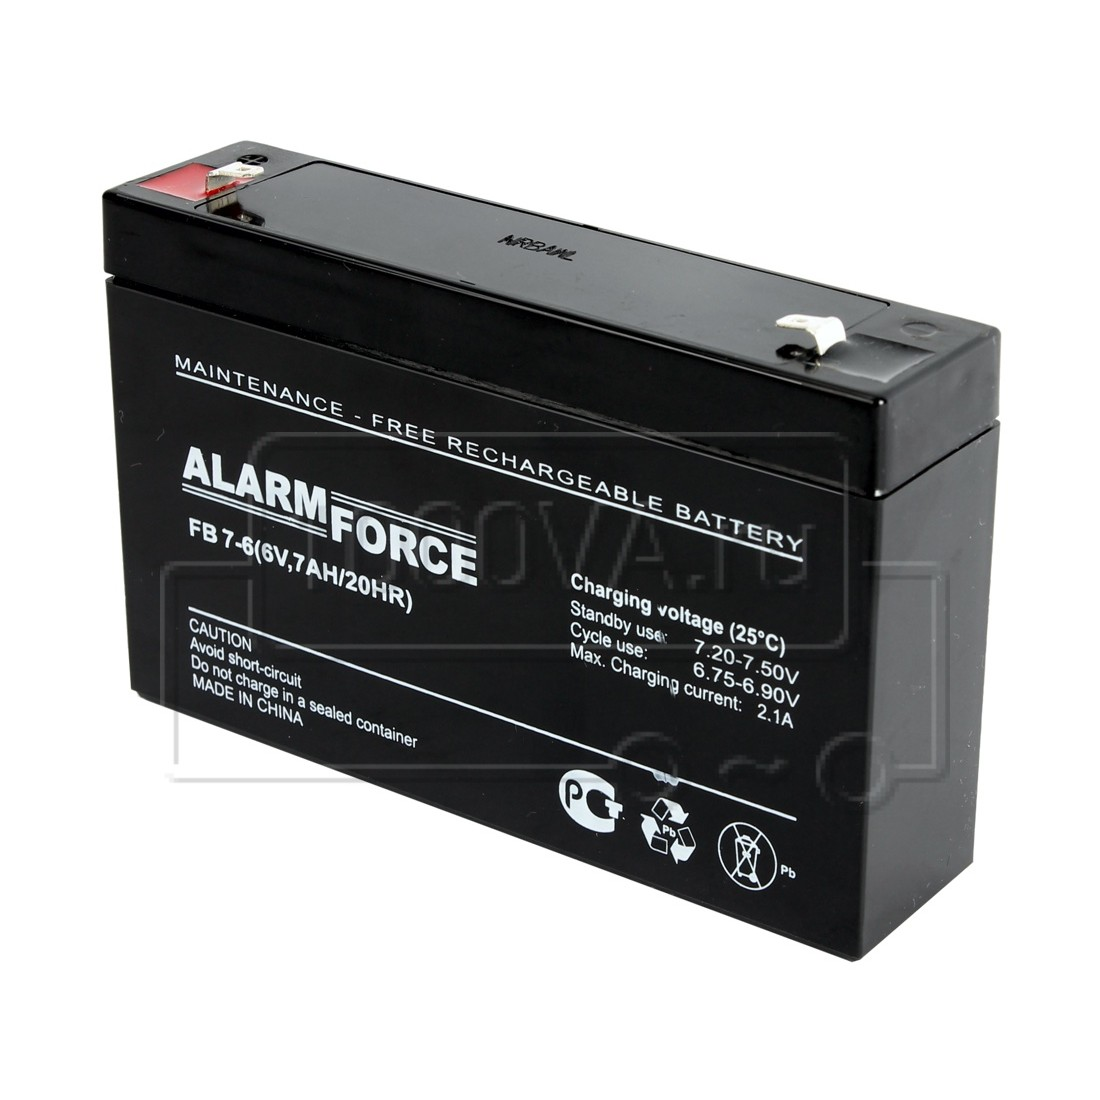 ALARM FORCE FB 7-6